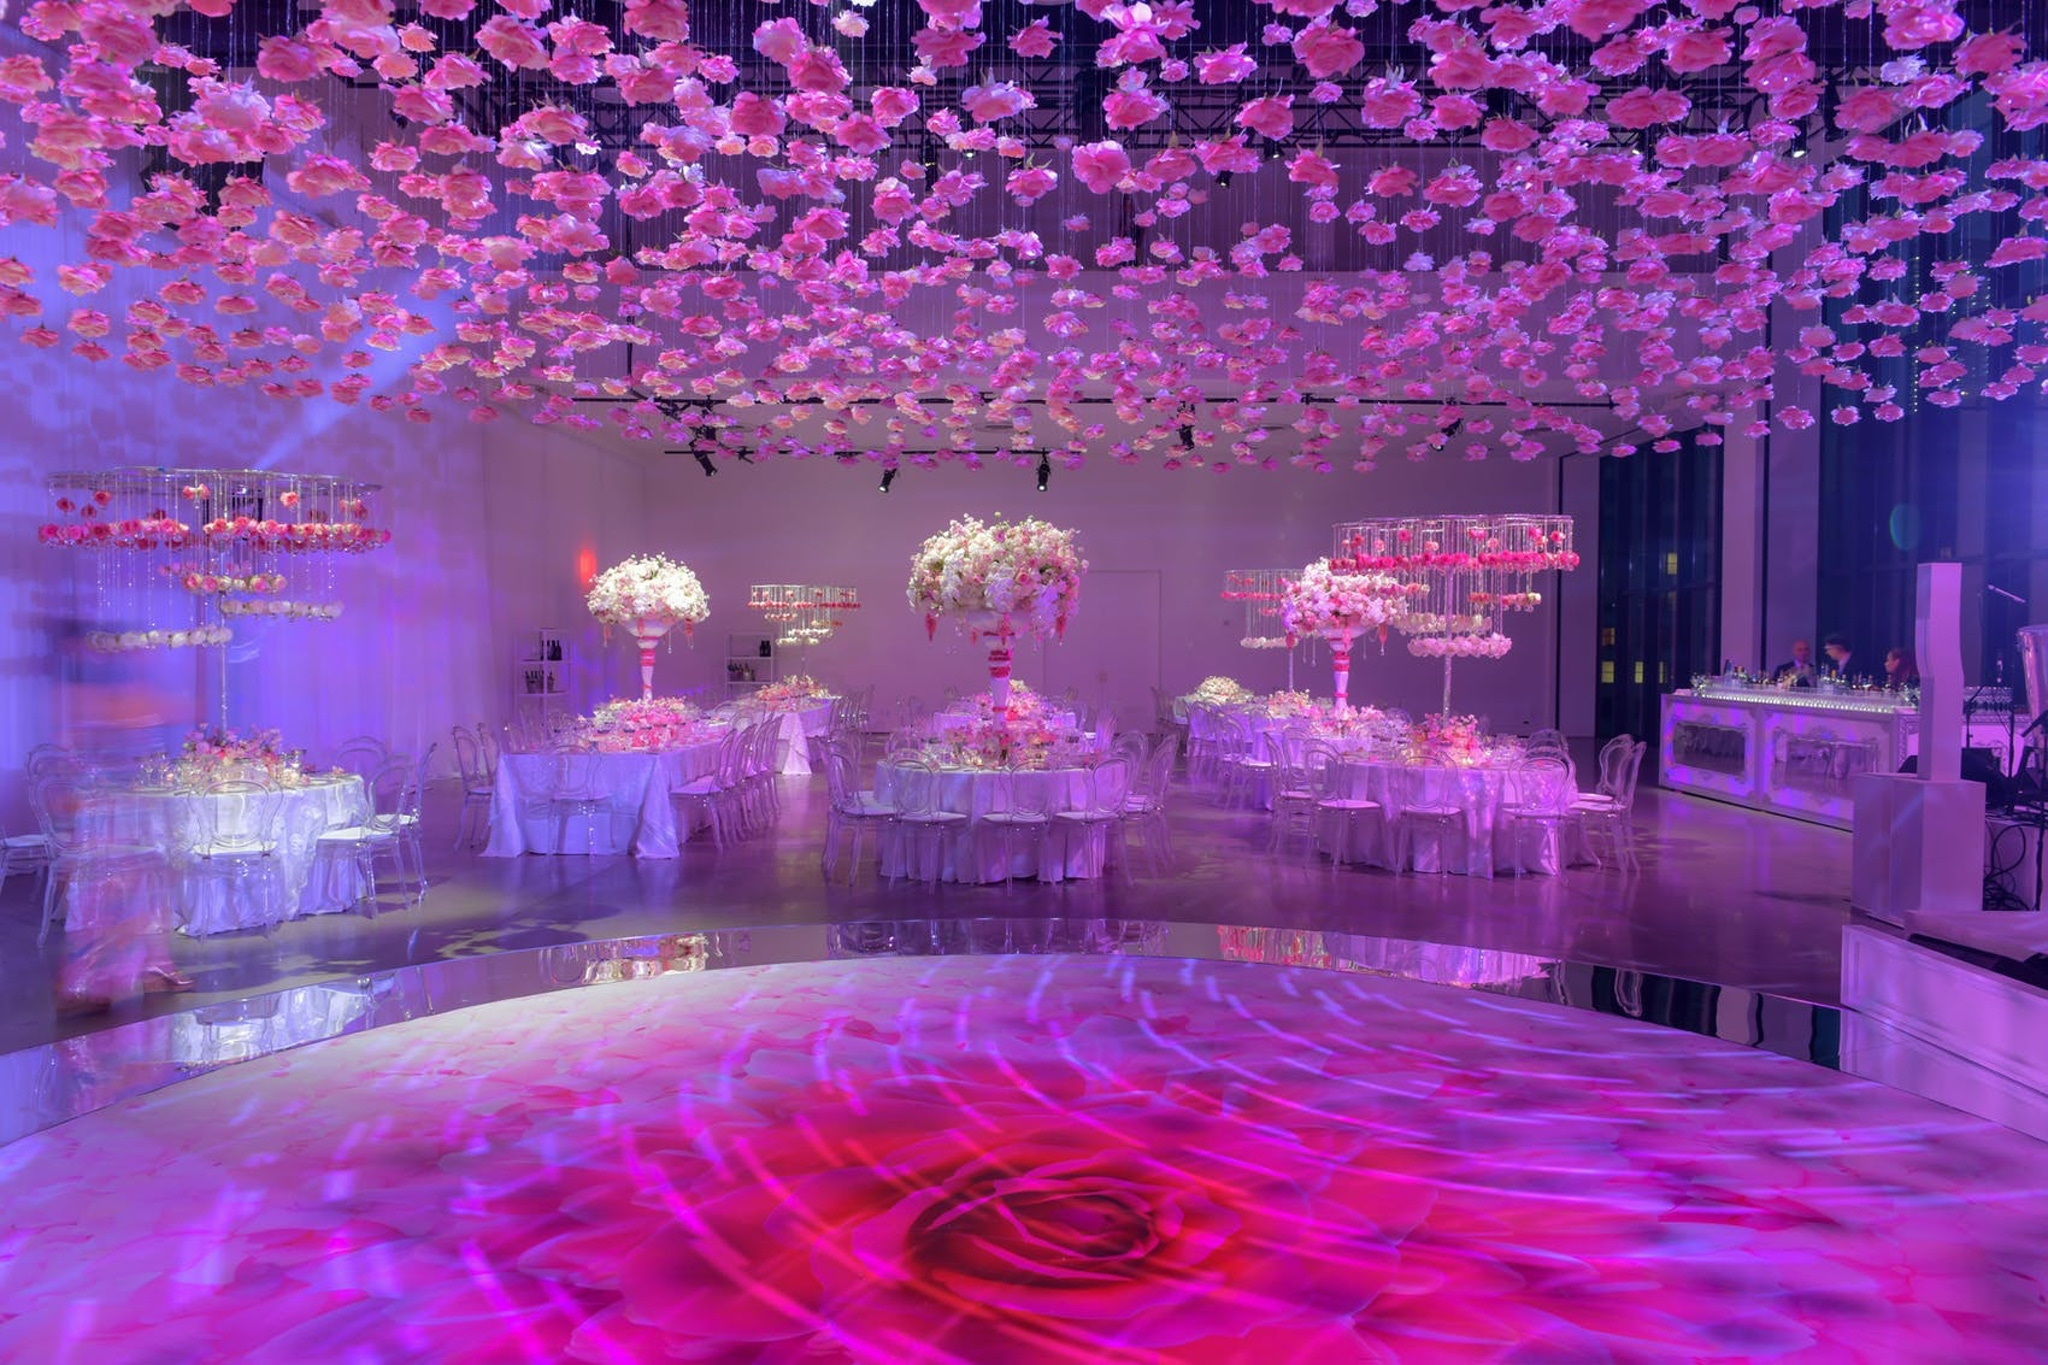 pink and purple balloons suspended from the ceiling